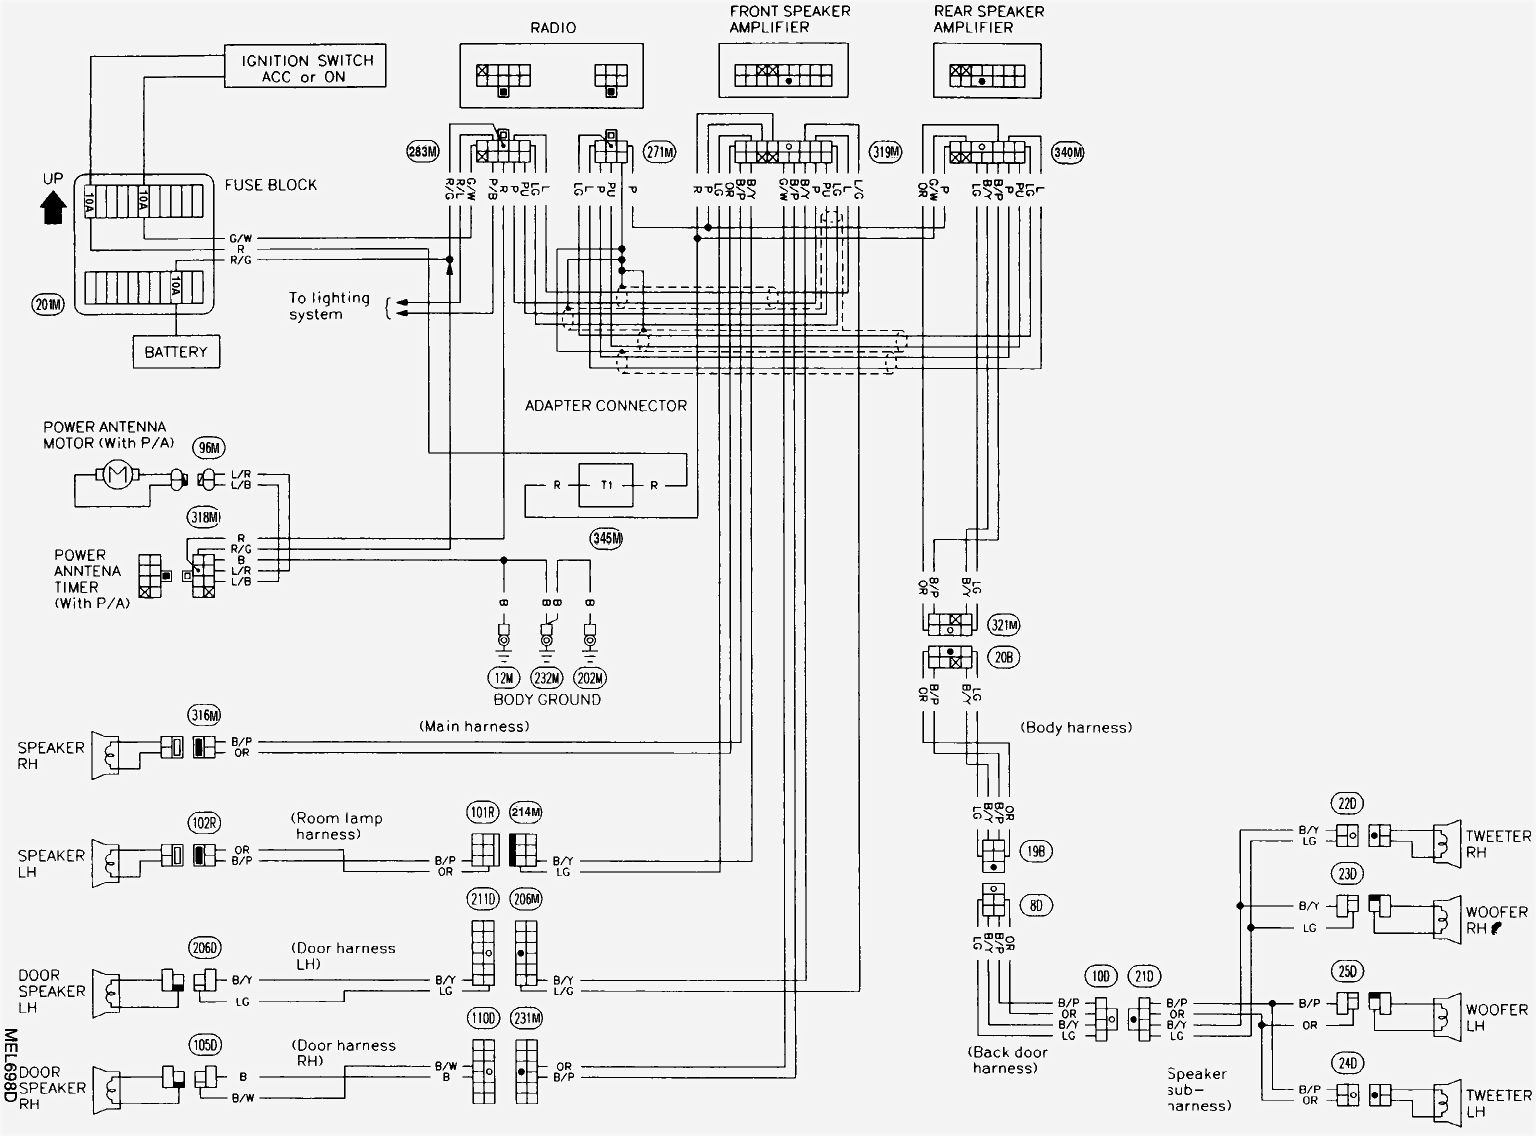 t 49f wiring diagram Download-true t 49f wiring diagram Collection Contemporary Nissan Almera Wiring Diagram Elaboration Wiring 8 DOWNLOAD Wiring Diagram 13-d